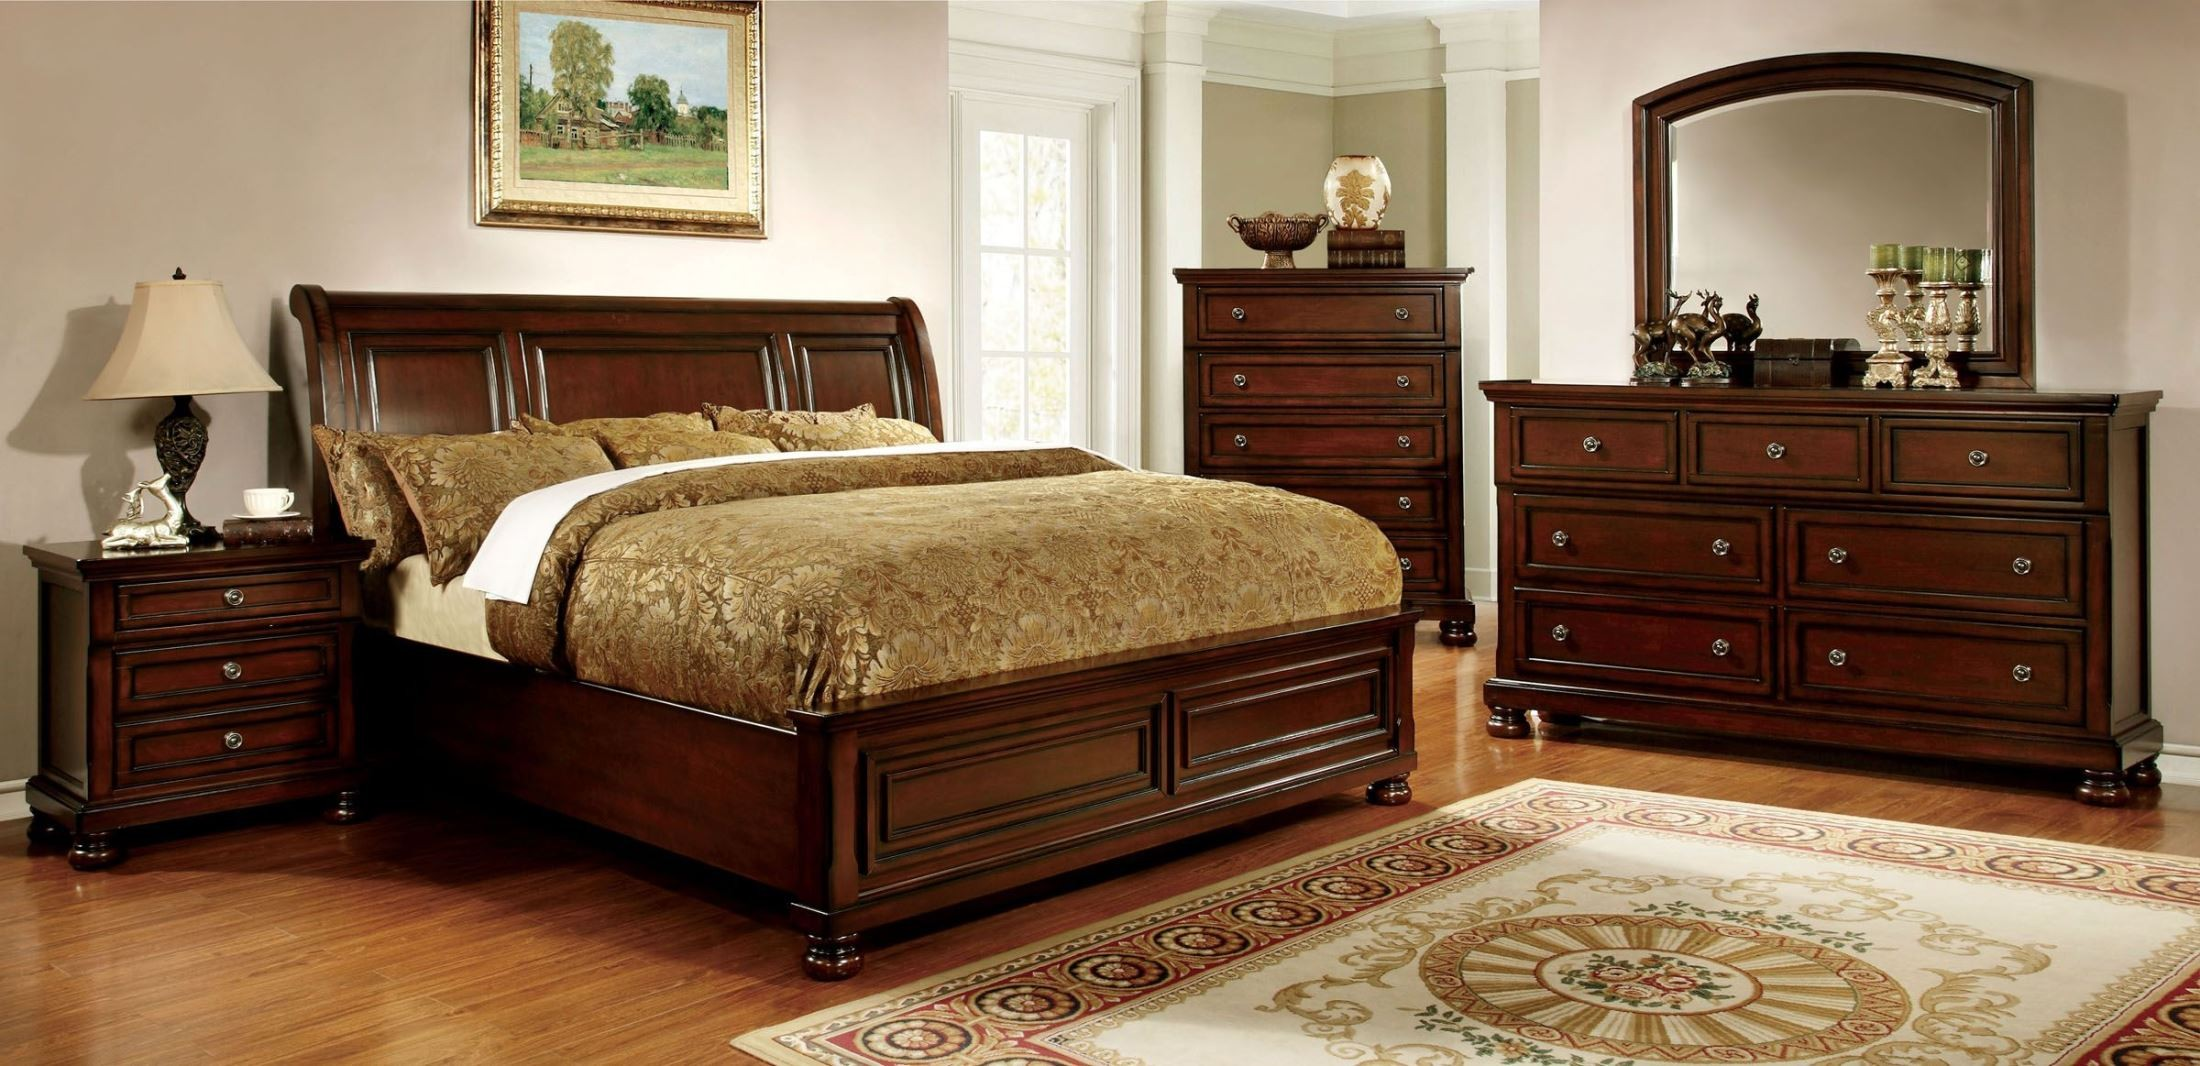 Northville dark cherry bedroom set from furniture of america cm7682q bed coleman furniture for Bedroom furniture washington dc